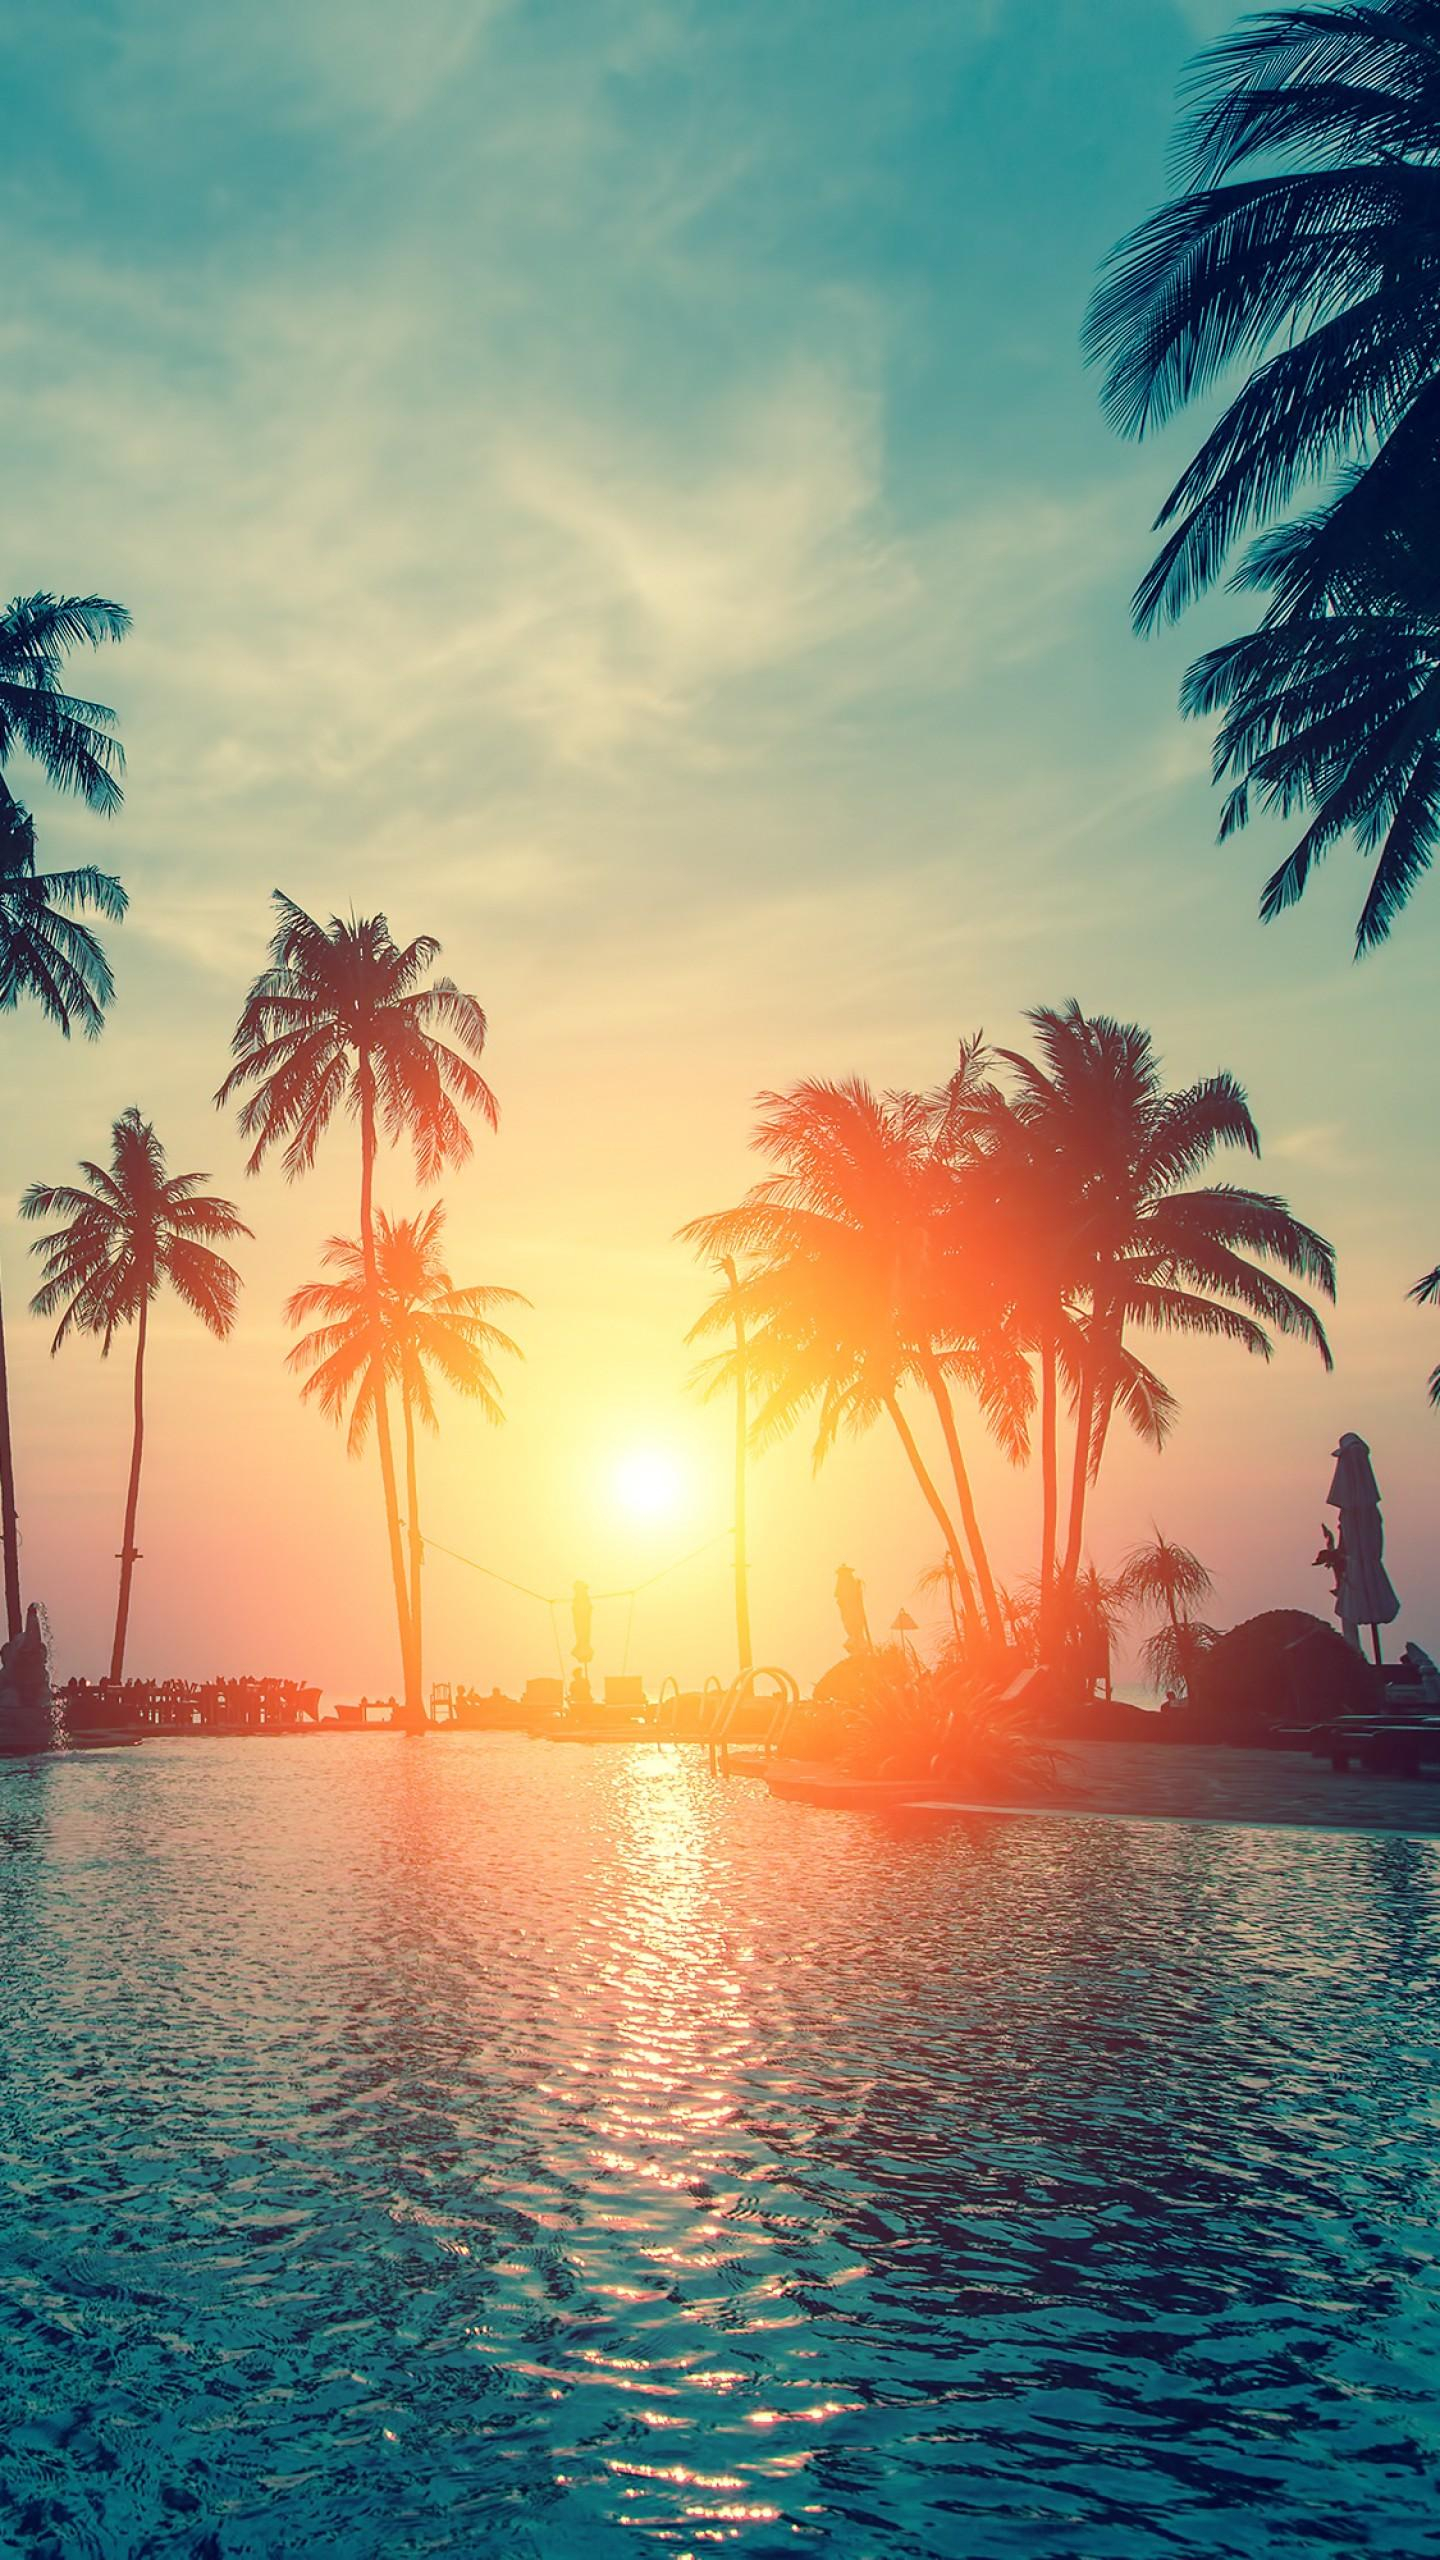 Sunset Palm Tree Wallpapers - Wallpaper Cave